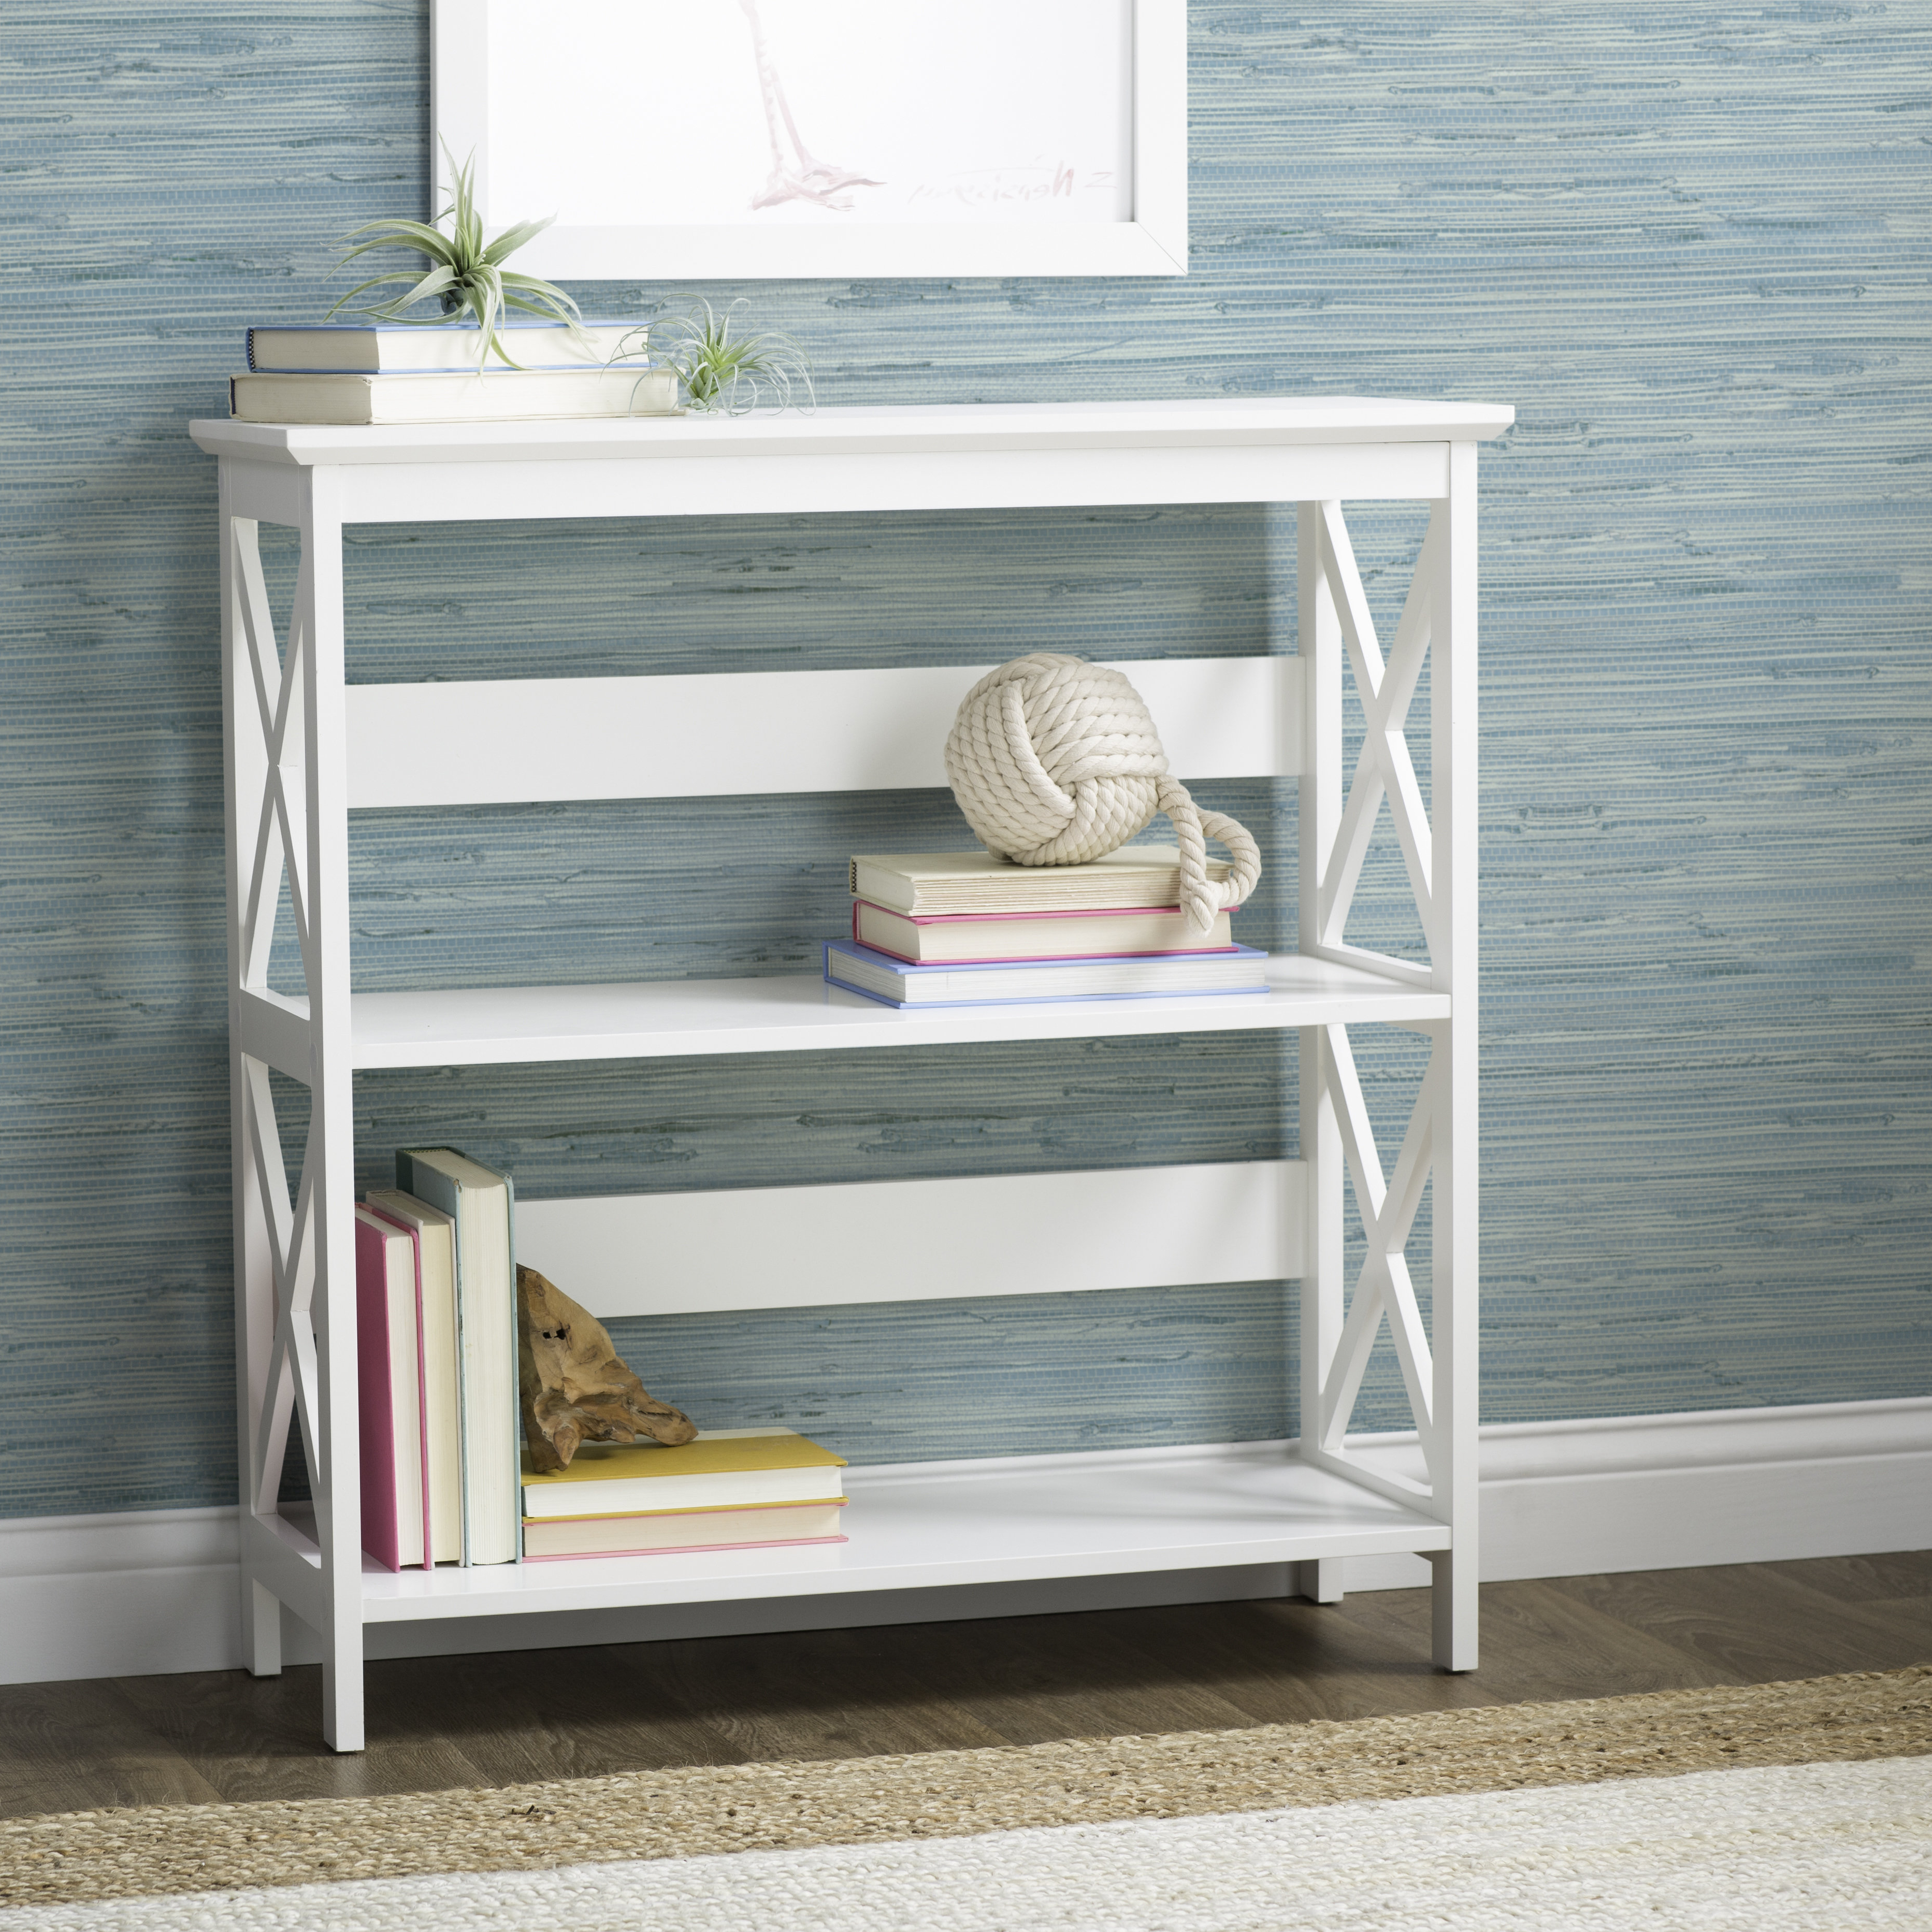 2019 Annabesook Etagere Bookcases For Stoneford Etagere Bookcase (Gallery 16 of 20)